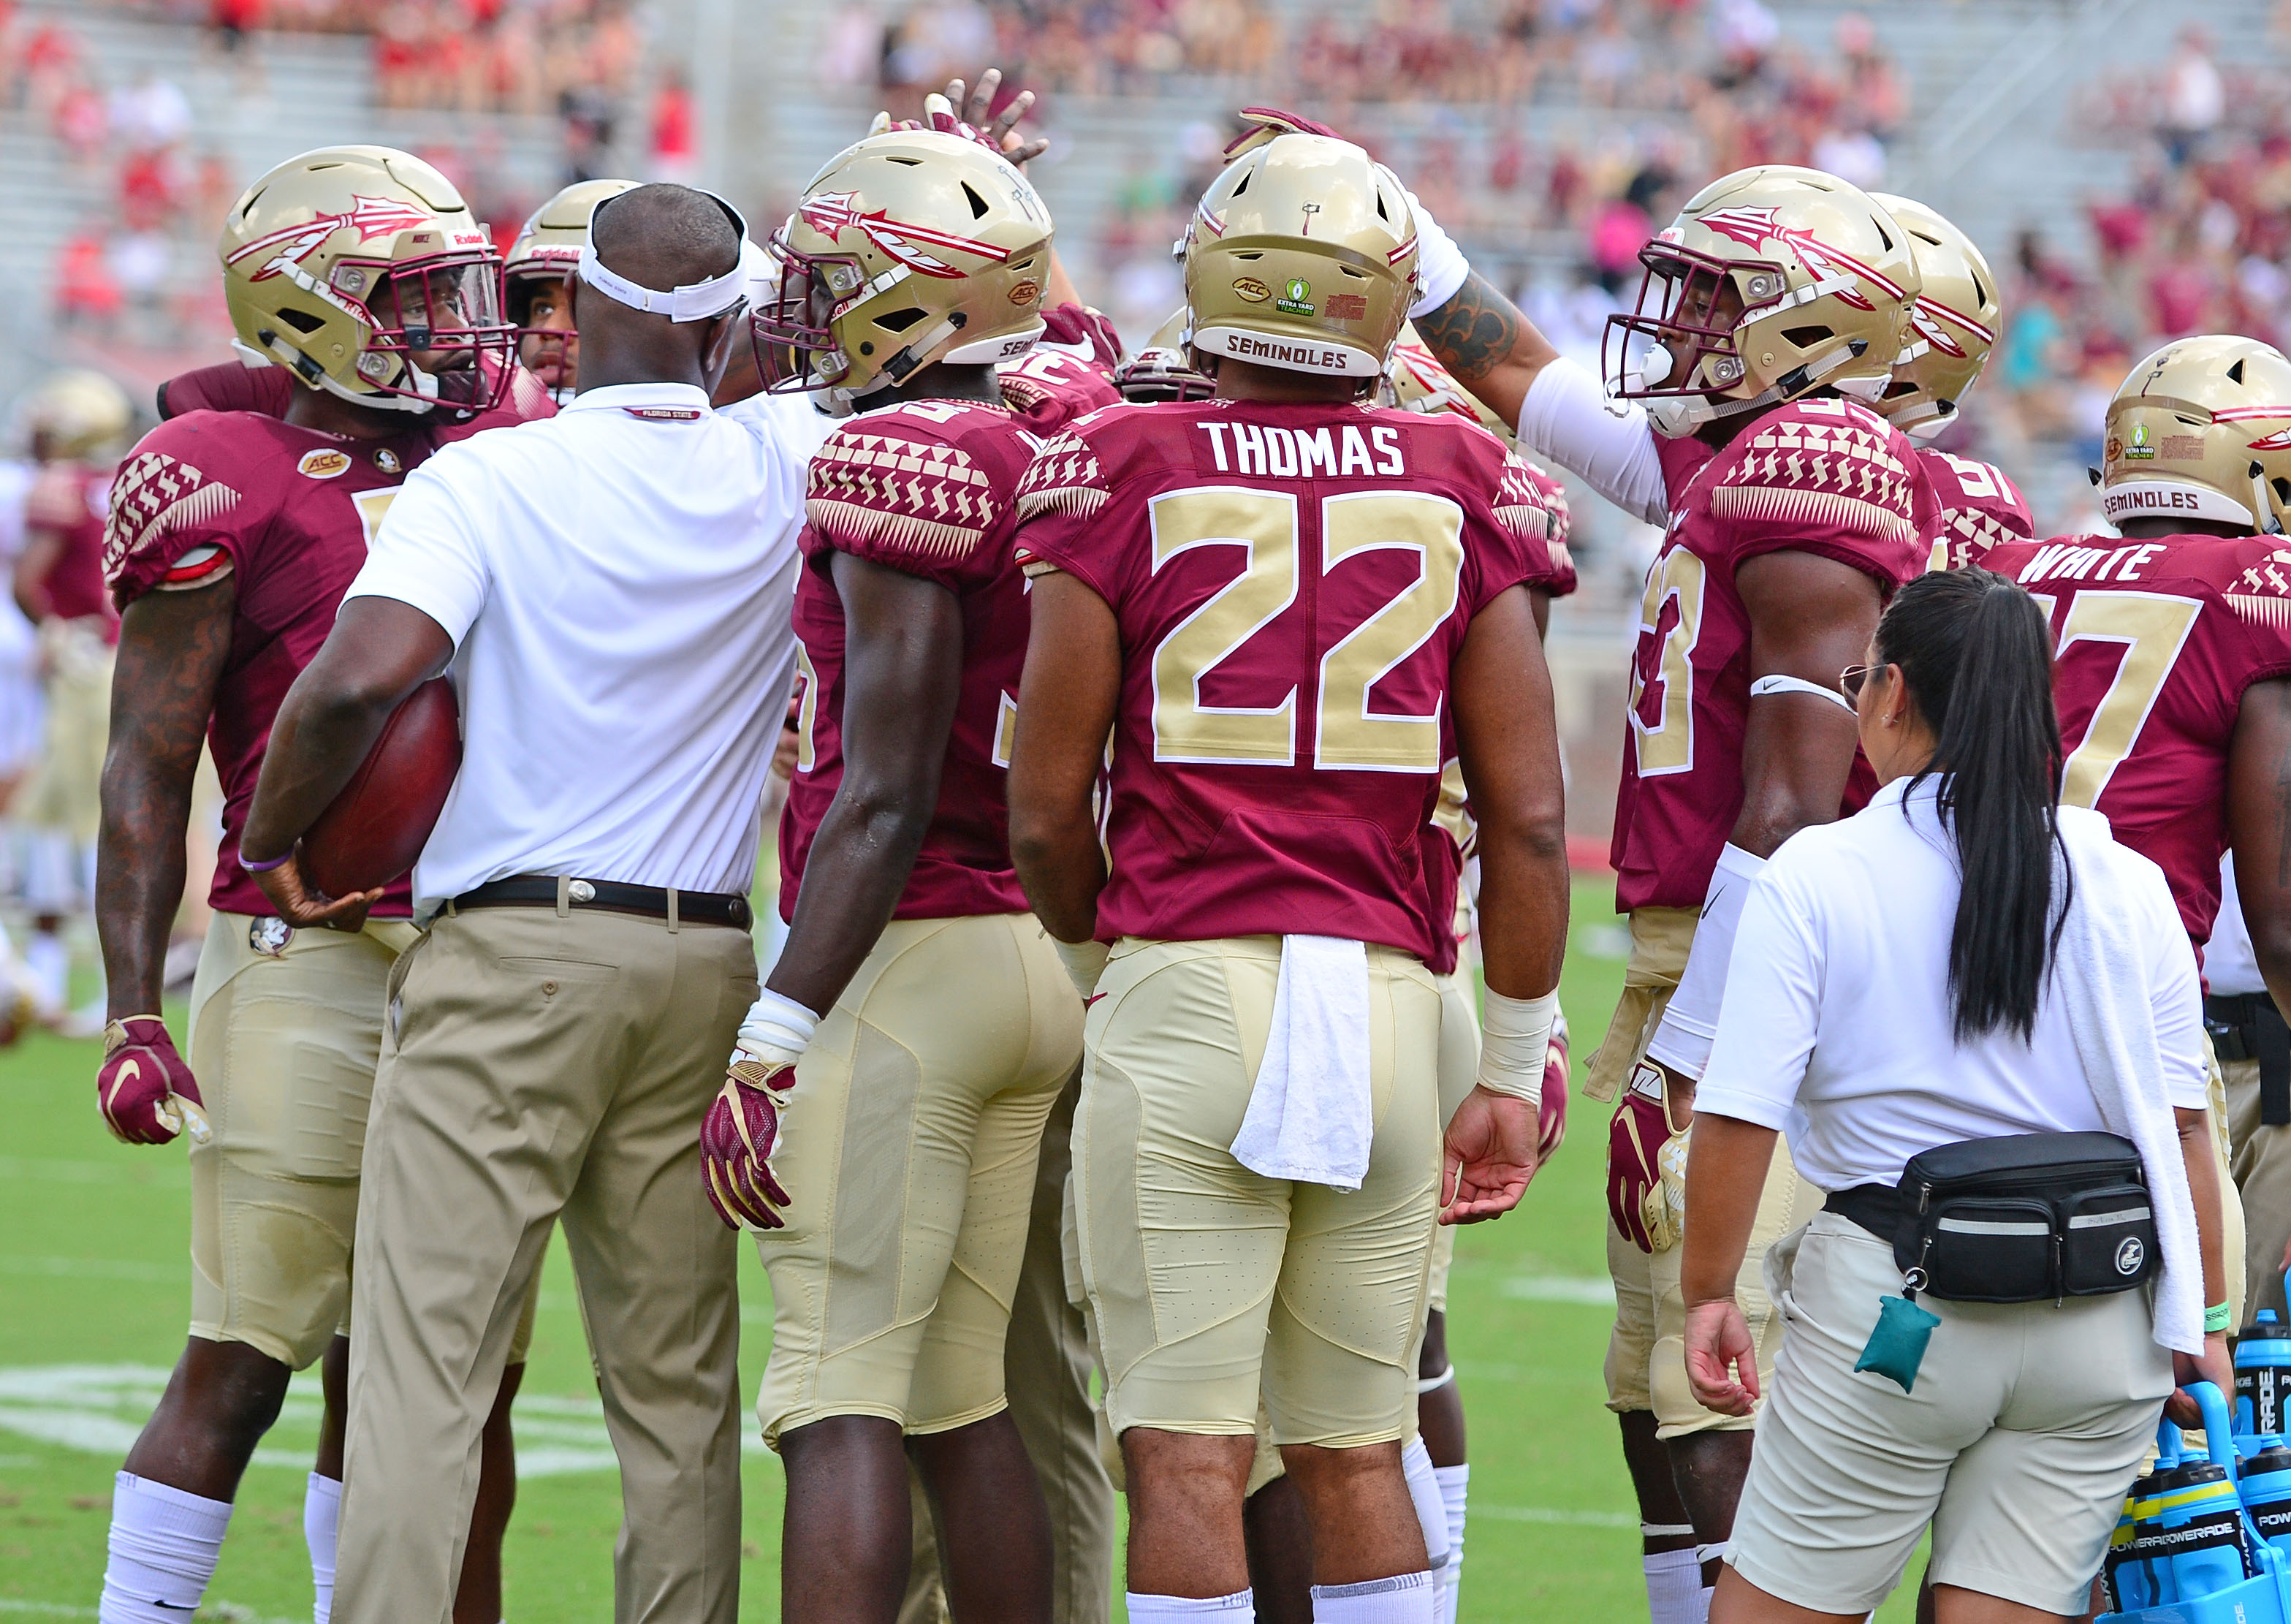 Photos: FSU vs. NIU